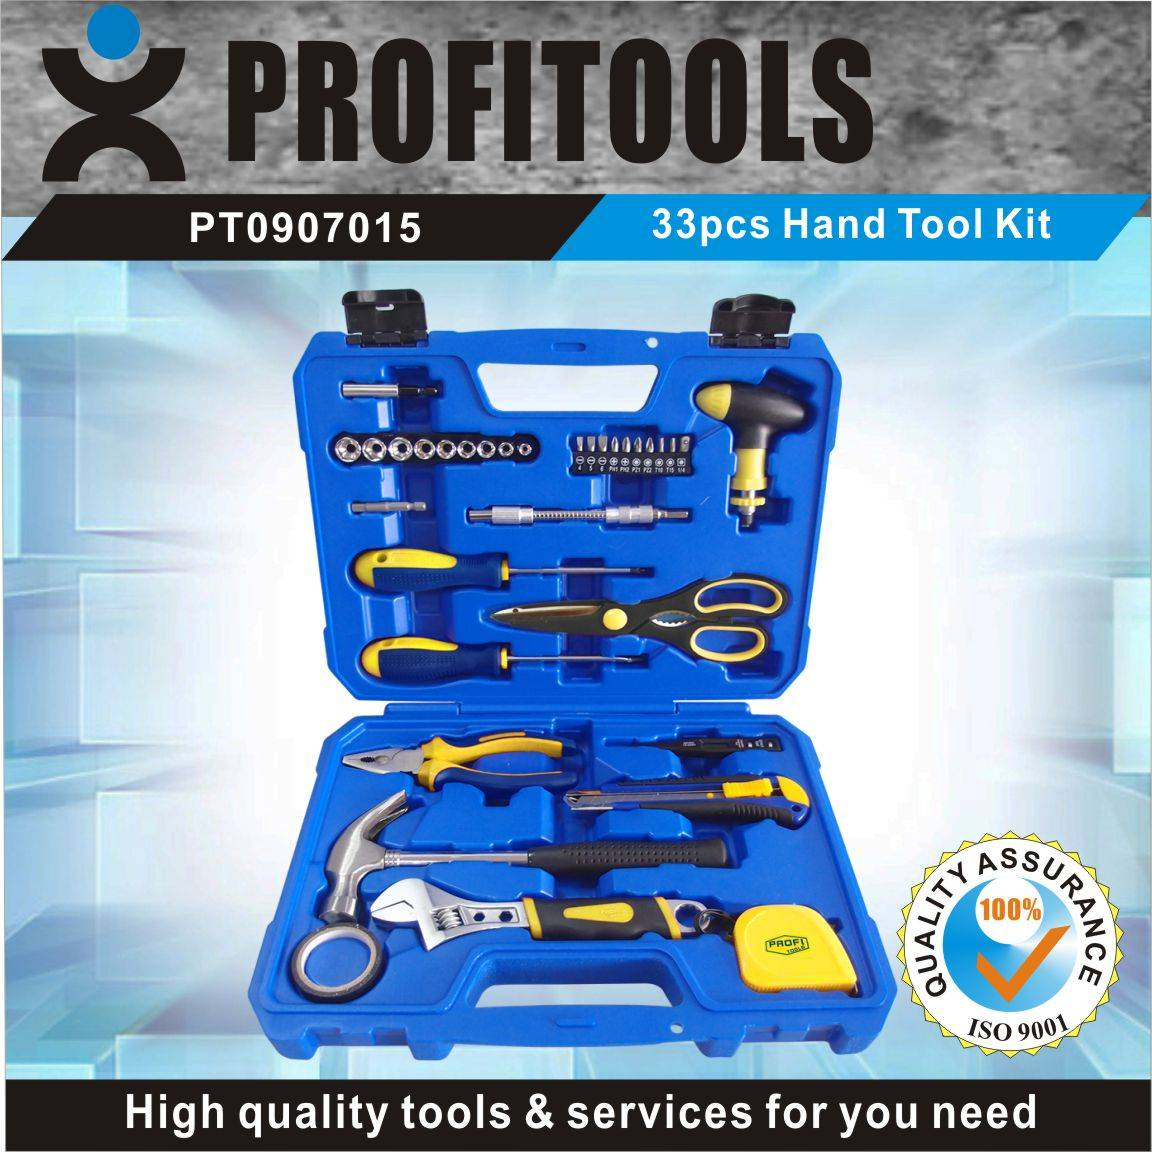 33pcs Hand Tool Kits for Household Tool